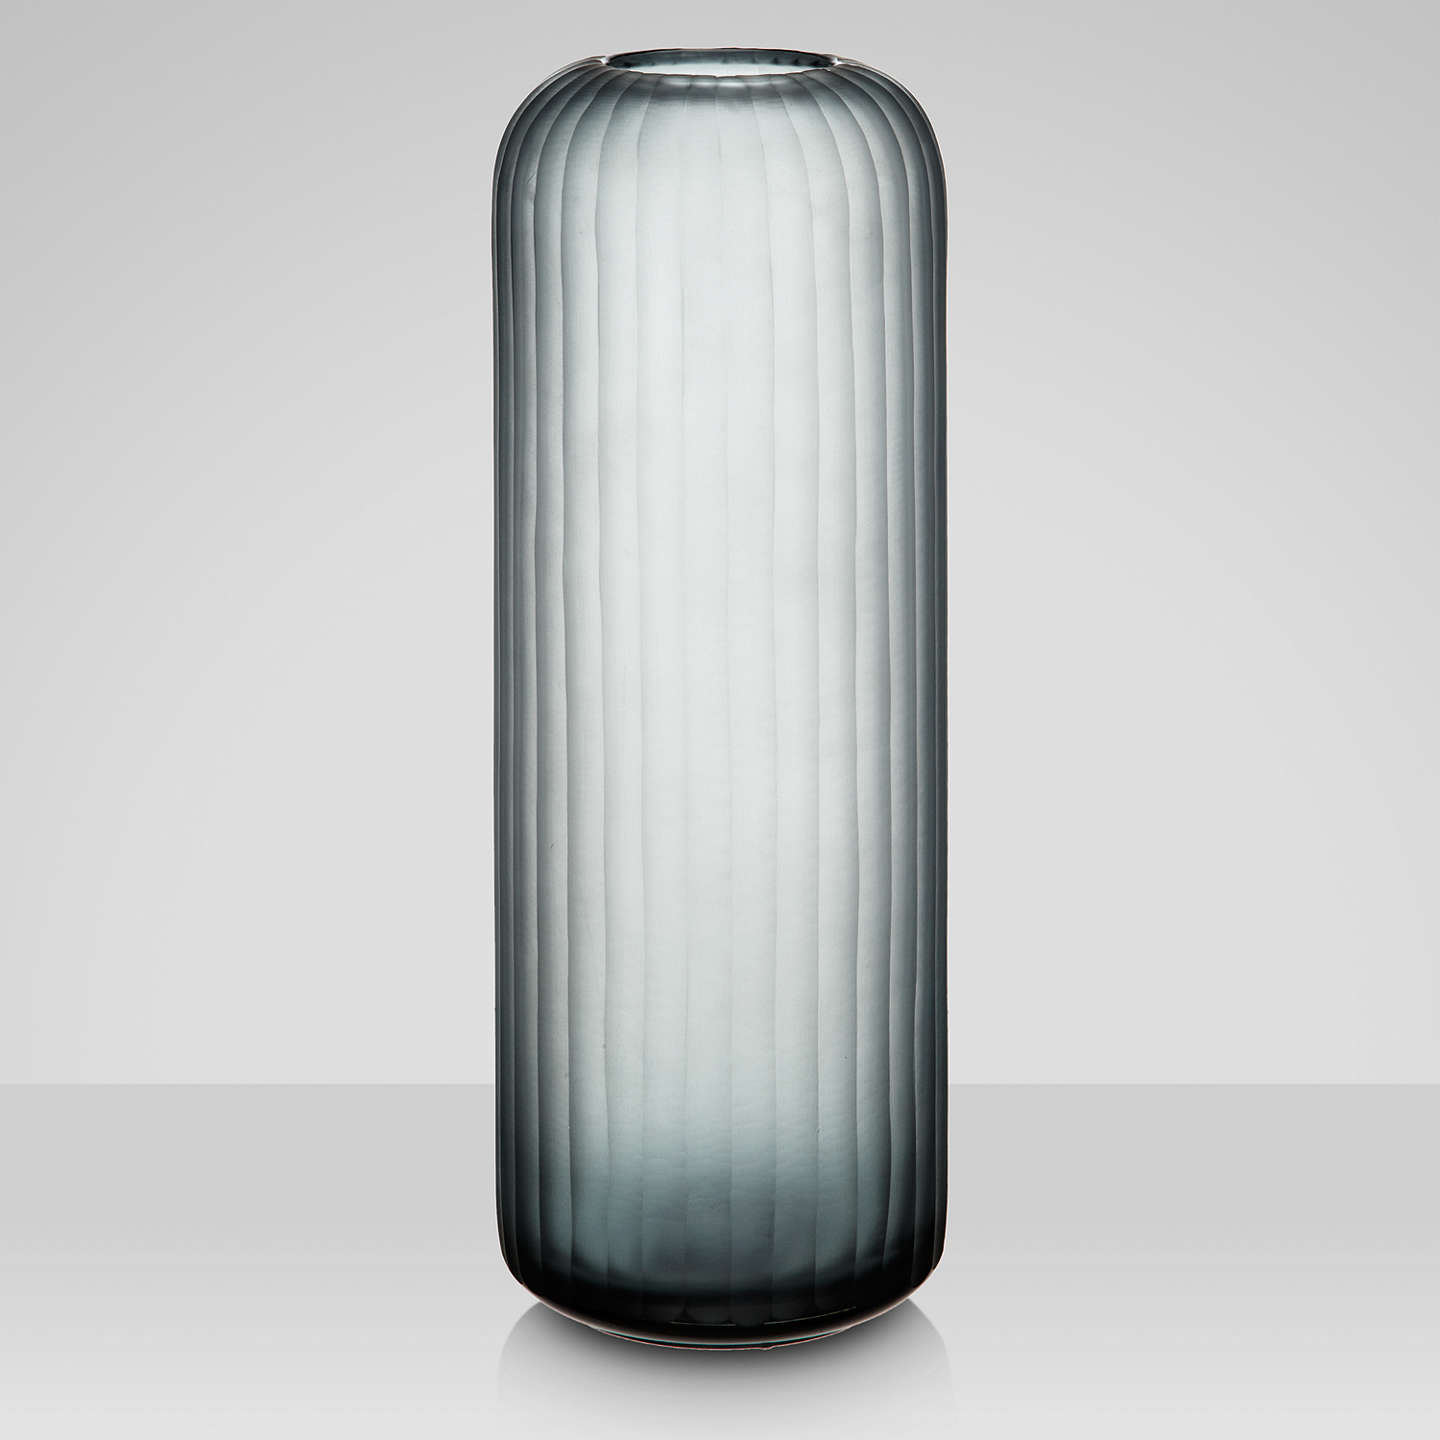 BuyJohn Lewis Tall Cut Stripes Vase Online at johnlewis.com